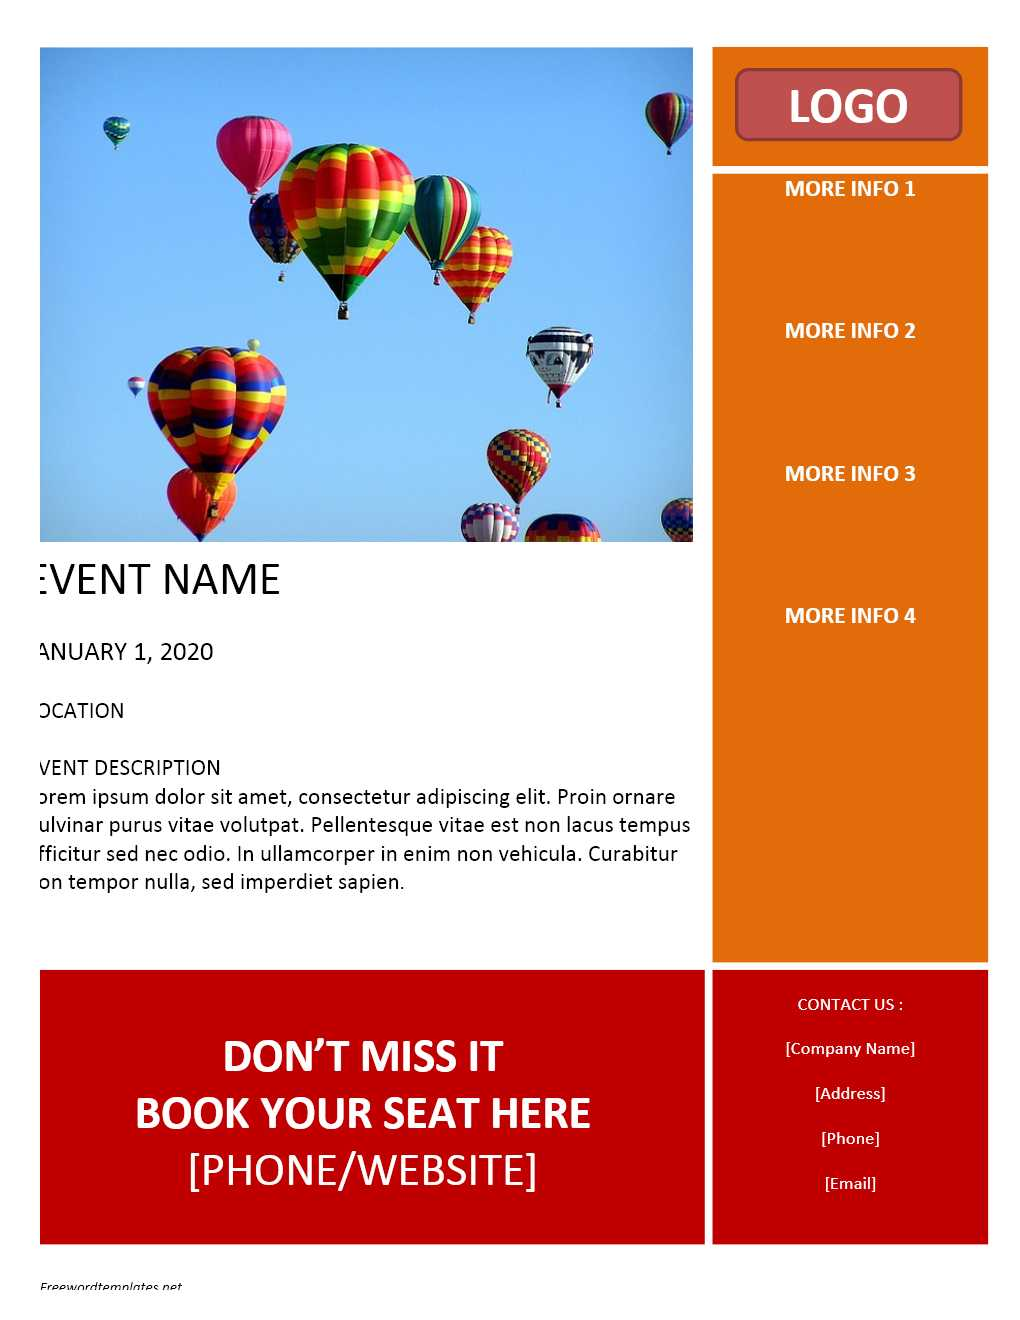 Free Printable Flyer Templates Word | Room Surf Within Templates For Flyers In Word